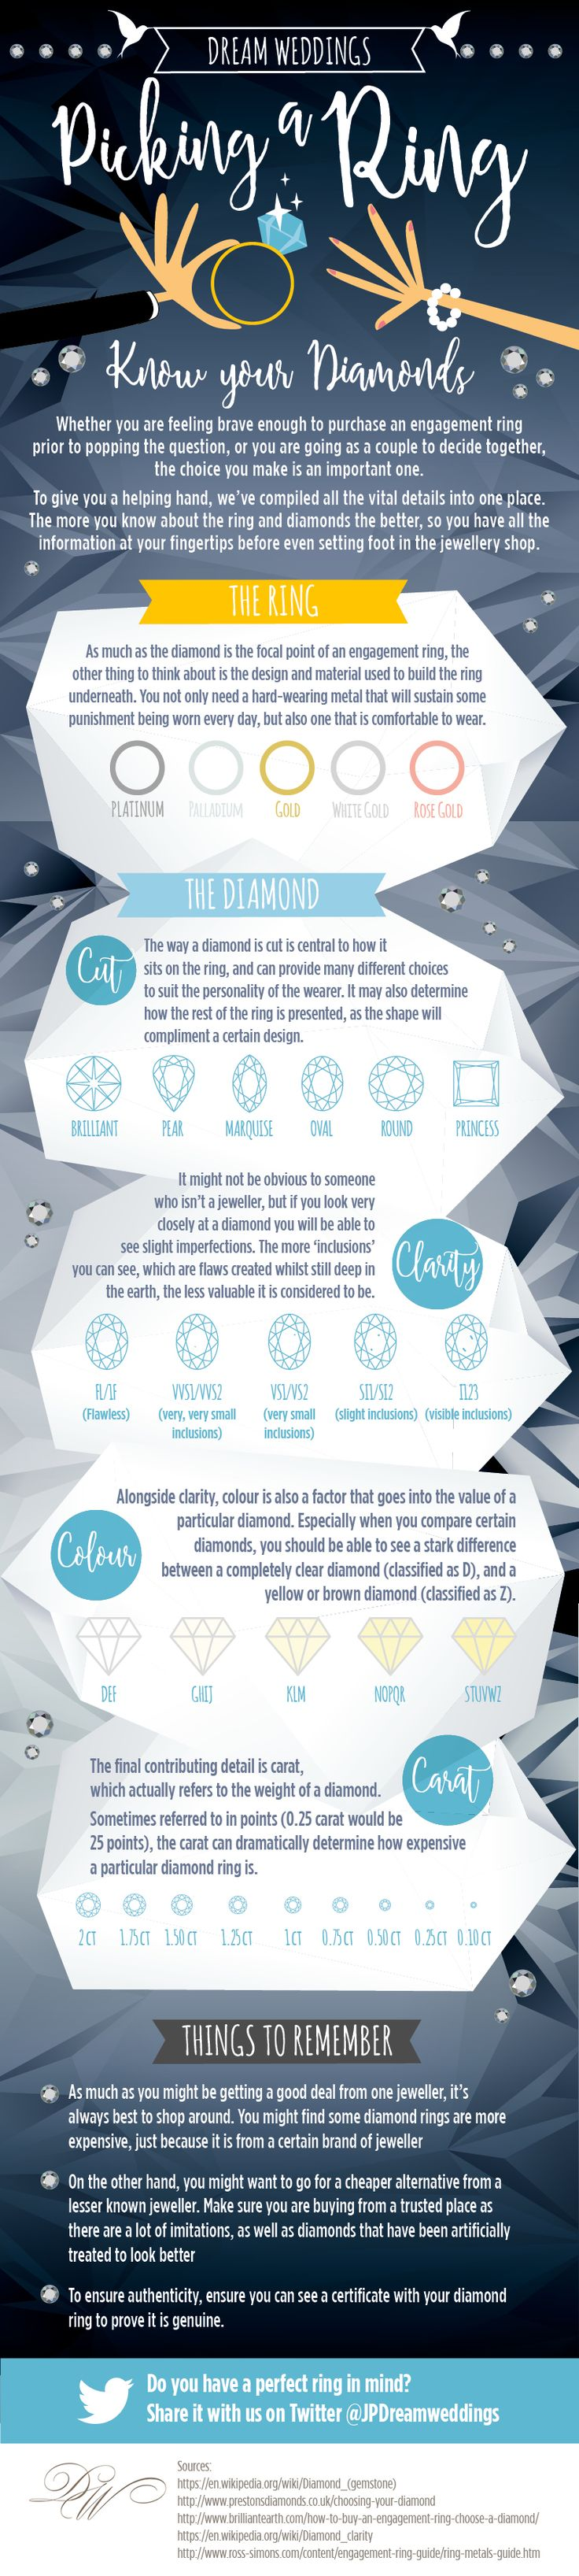 Picking a Wedding Ring Guide Infographic